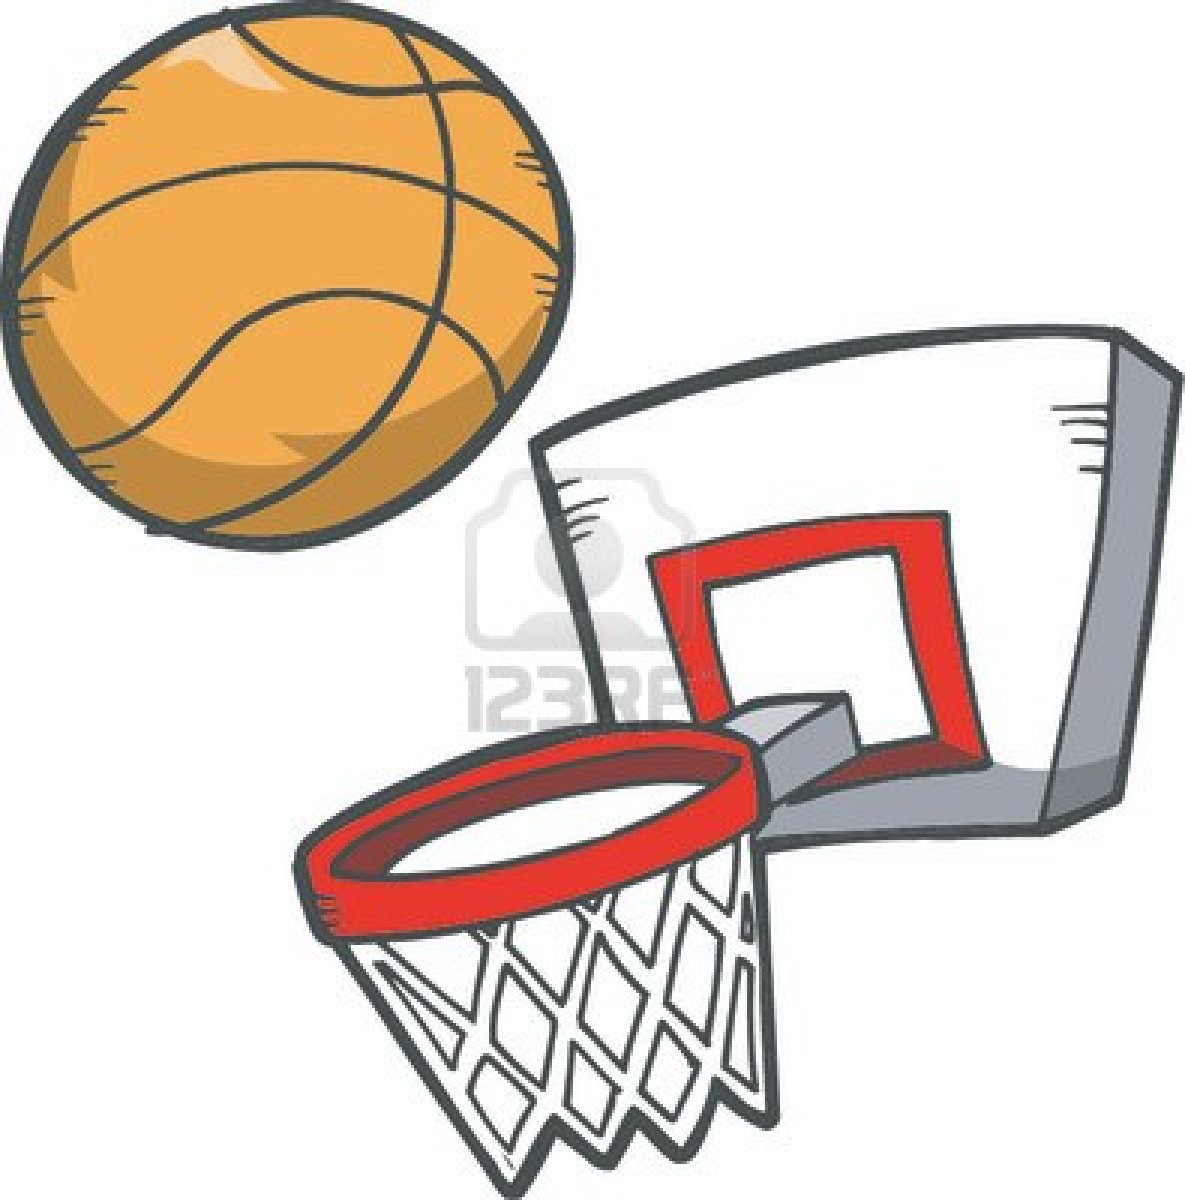 1185x1200 Basketball Hoop Clipart